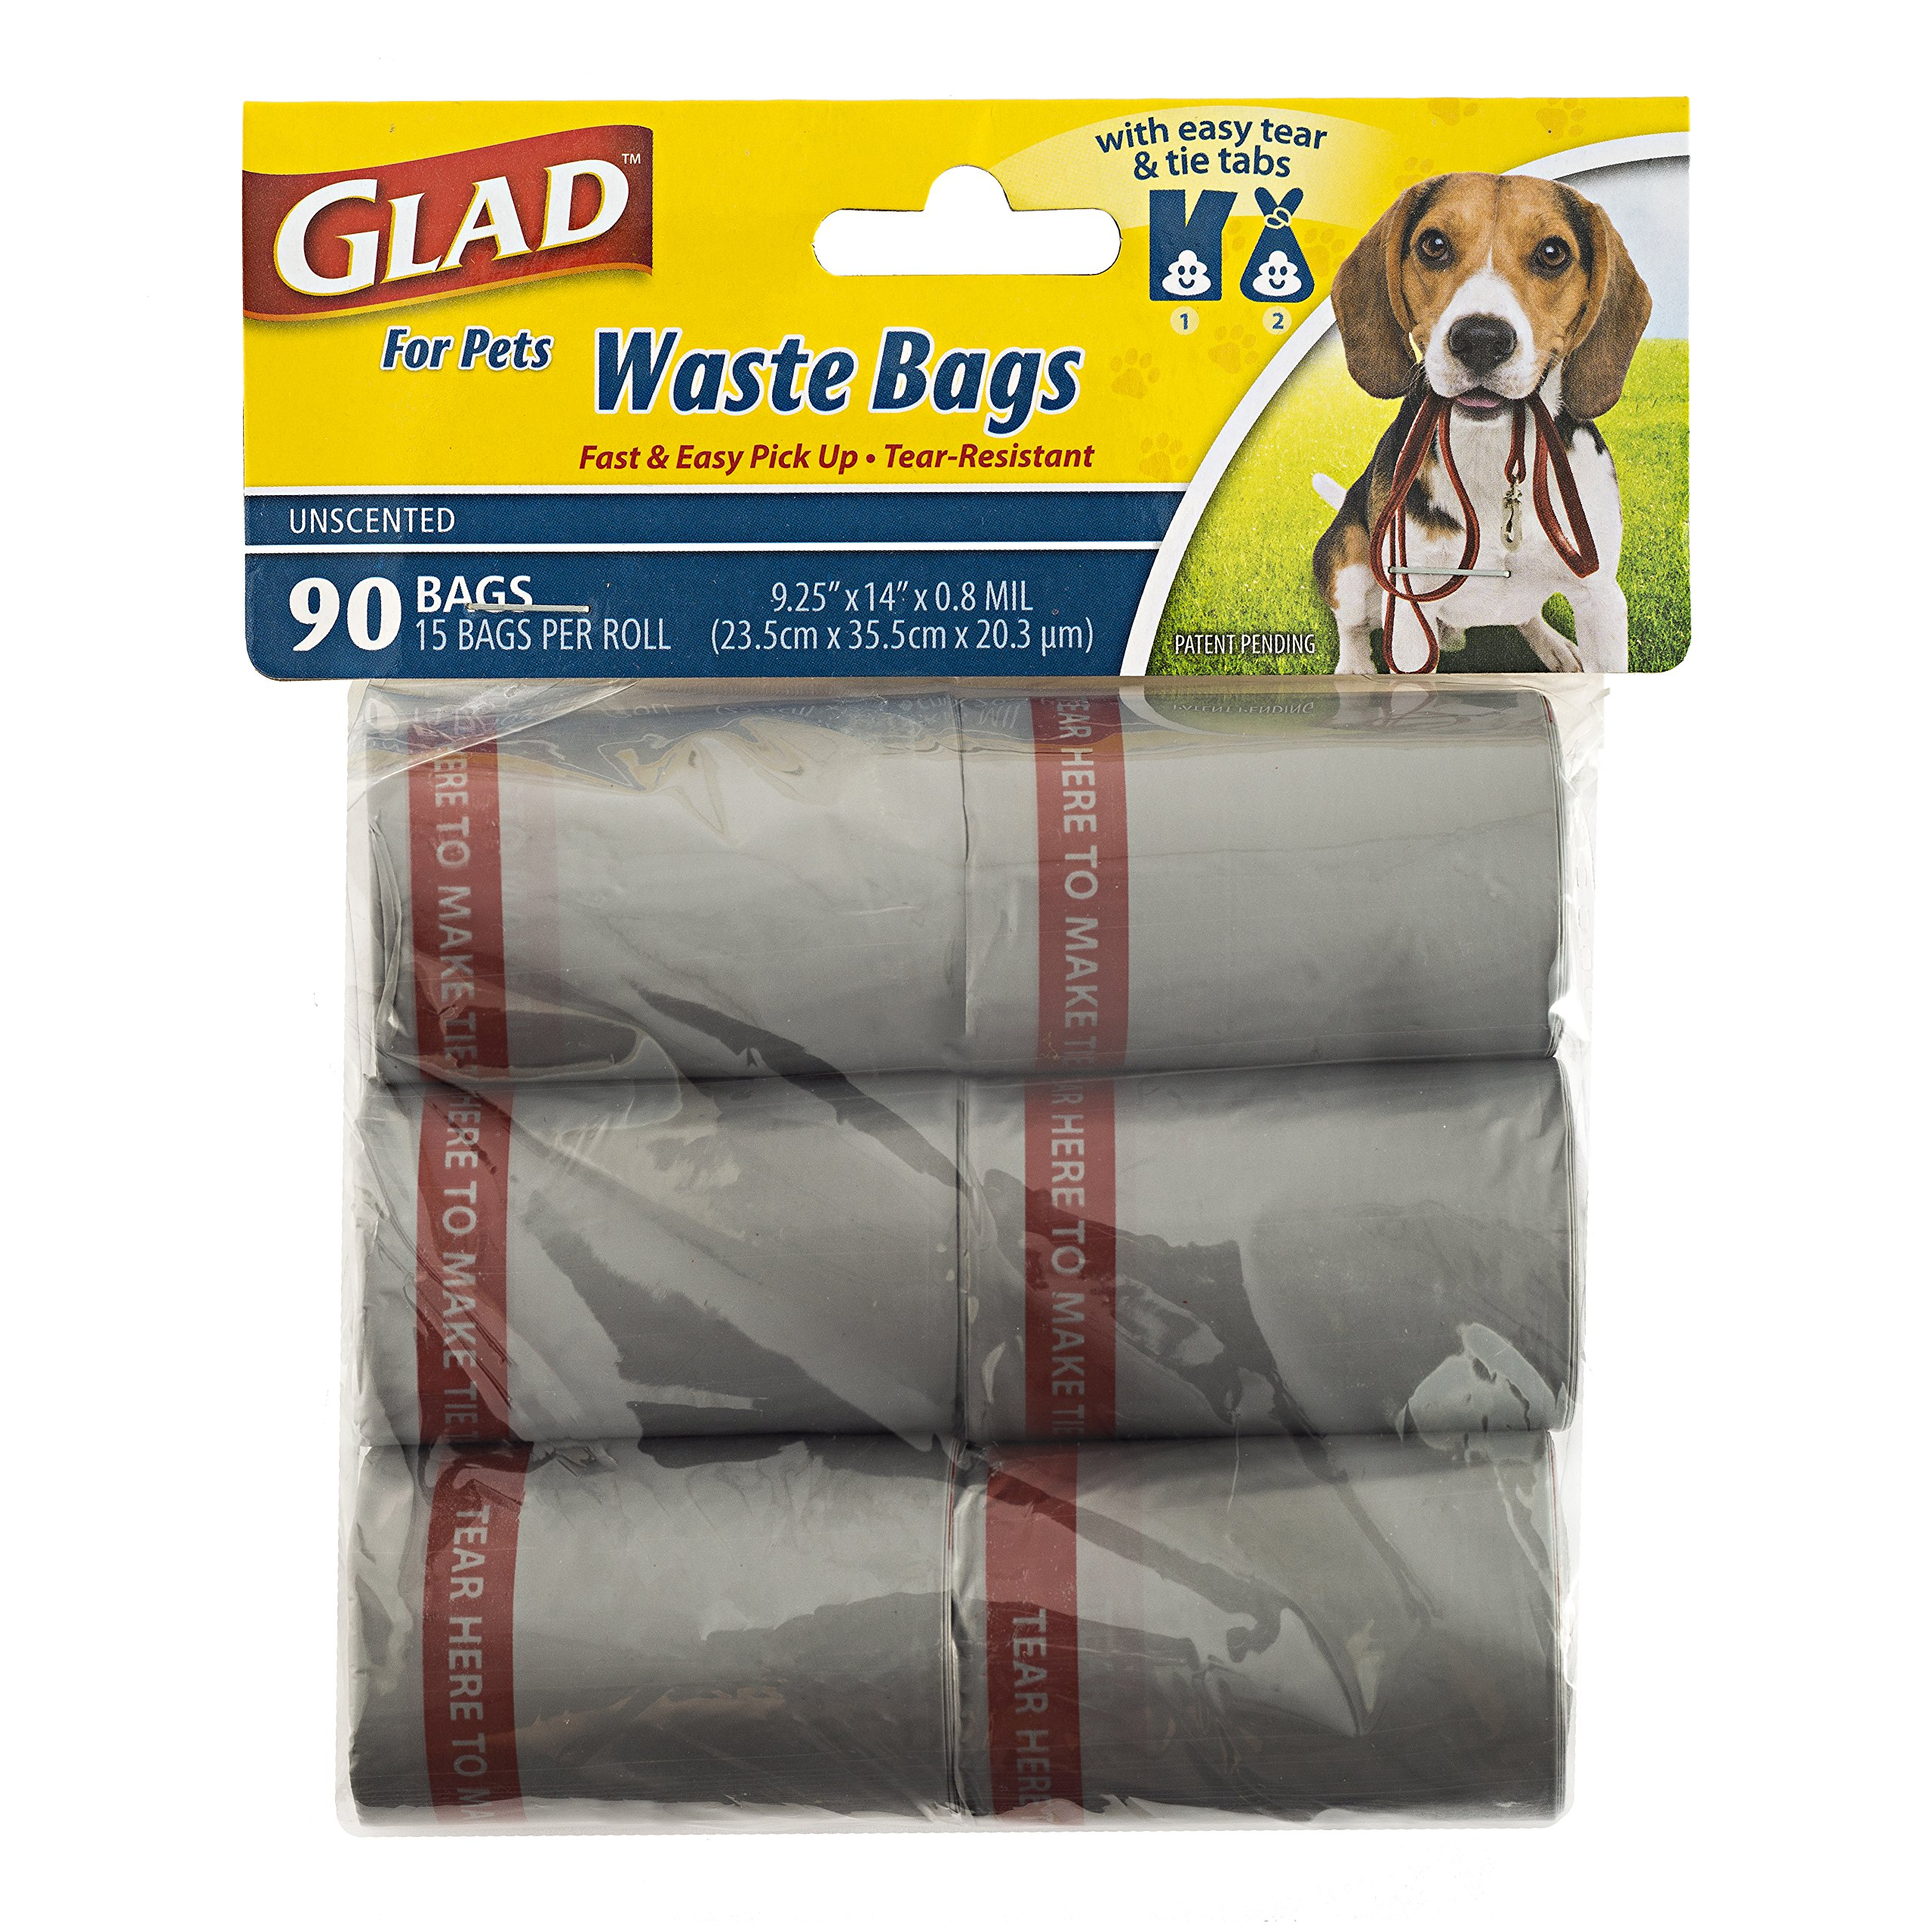 Glad for Pets Dog Waste Bag Dispenser with Extra Large Bags, 90 Count, Unscented